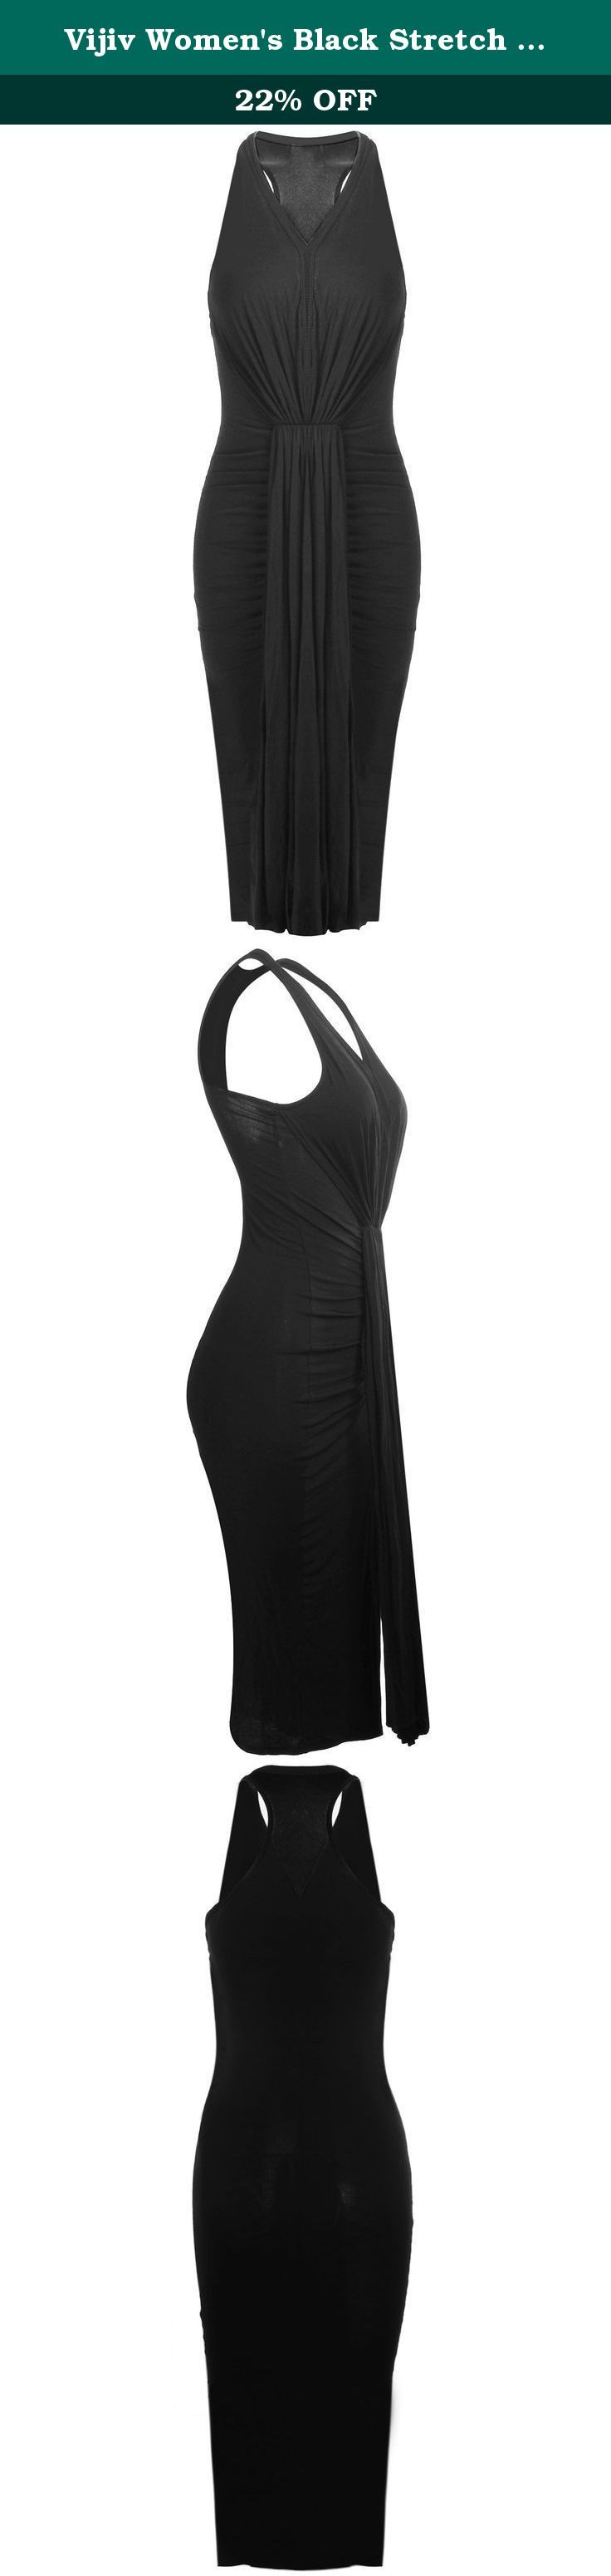 Vijiv Women's Black Stretch Cotton Blend Ruched Pleated Cocktail Dress,Black,8/10 Large. Material : Cotton Stretch. ruched pleated dress. PLEASE CHOOSE YOUR SIZE BASED ON BELOW It Fit Perfect as USA Size 2-6 / USA Size 8-10 / USA Size 12-14 / USA Size 16-18 ,The Pleated Dress have Strong Stretch,. Model in pictures is 5 feet 8 inches (173cm) tall wearing size US 2-6. Garment Care: Machine Washable.